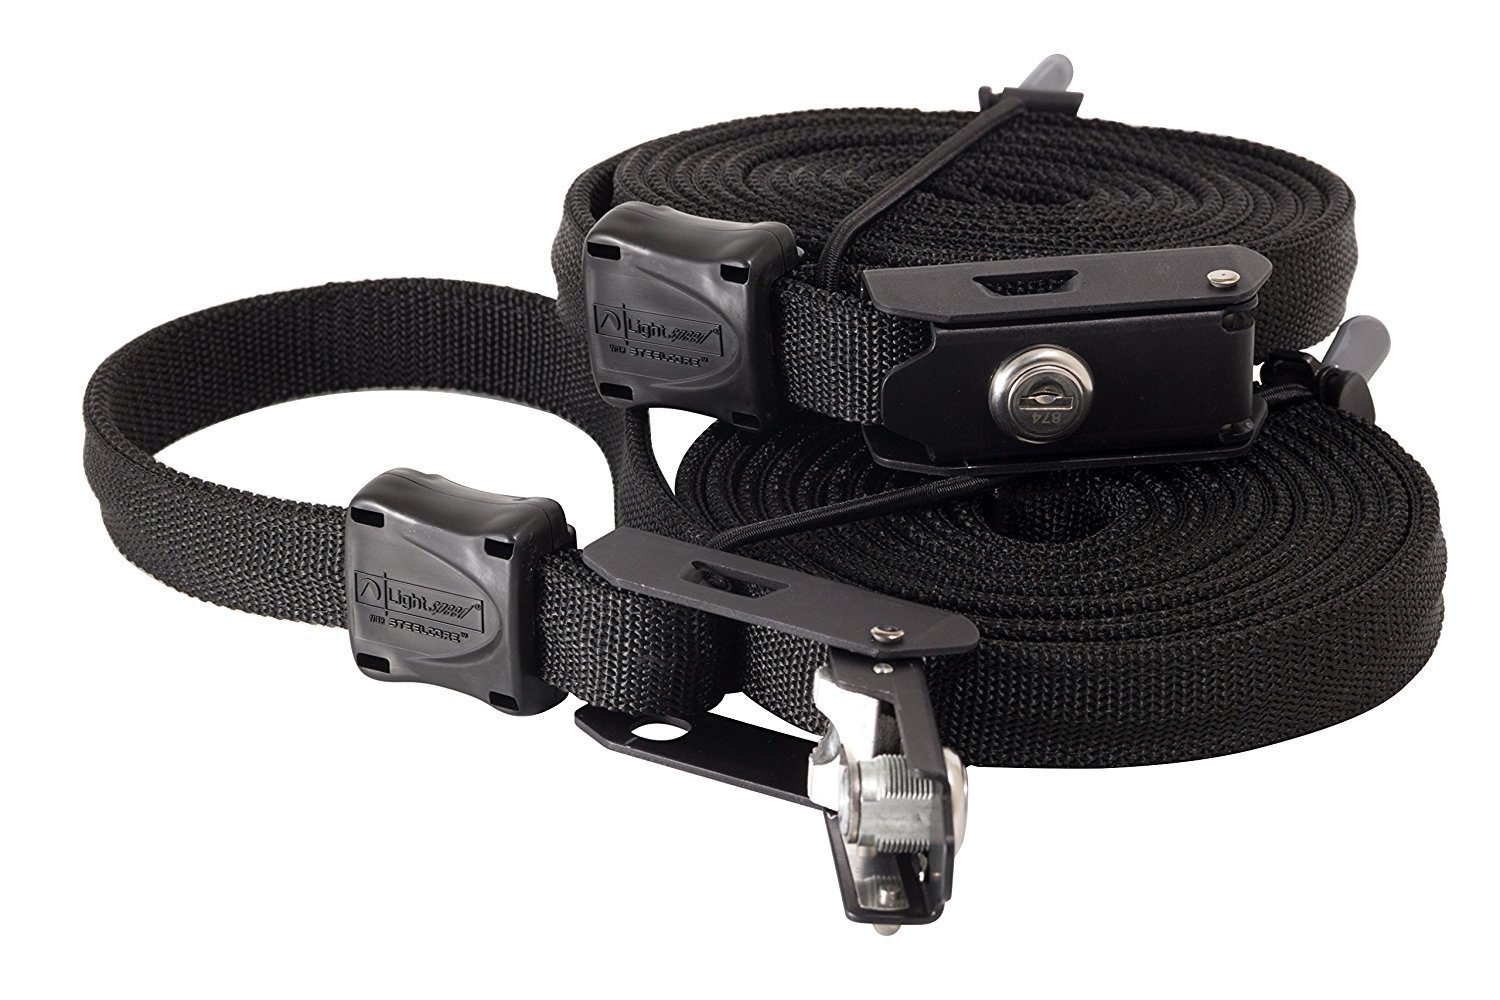 Lockable Tie Down Security Lock Lashing Strap with Steel Core by Lightspeed Outdoors, (10' Black, 2 Pack) by Lightspeed Outdoors (Image #3)